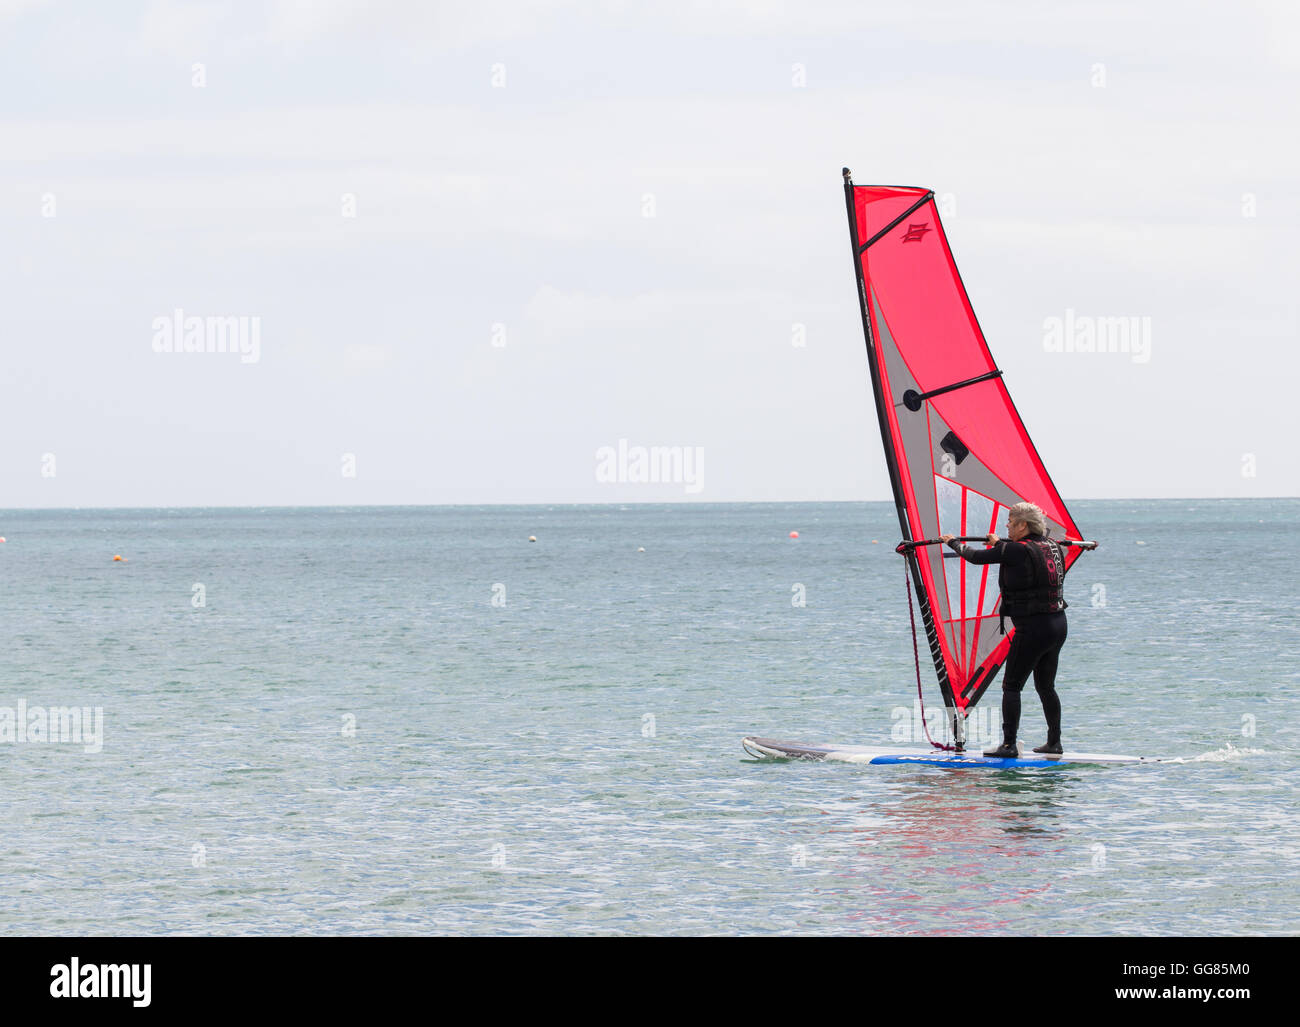 An elderly man in a wet suit keeping active and enjoying a windsurfing lesson on a calm, flat ocean. - Stock Image